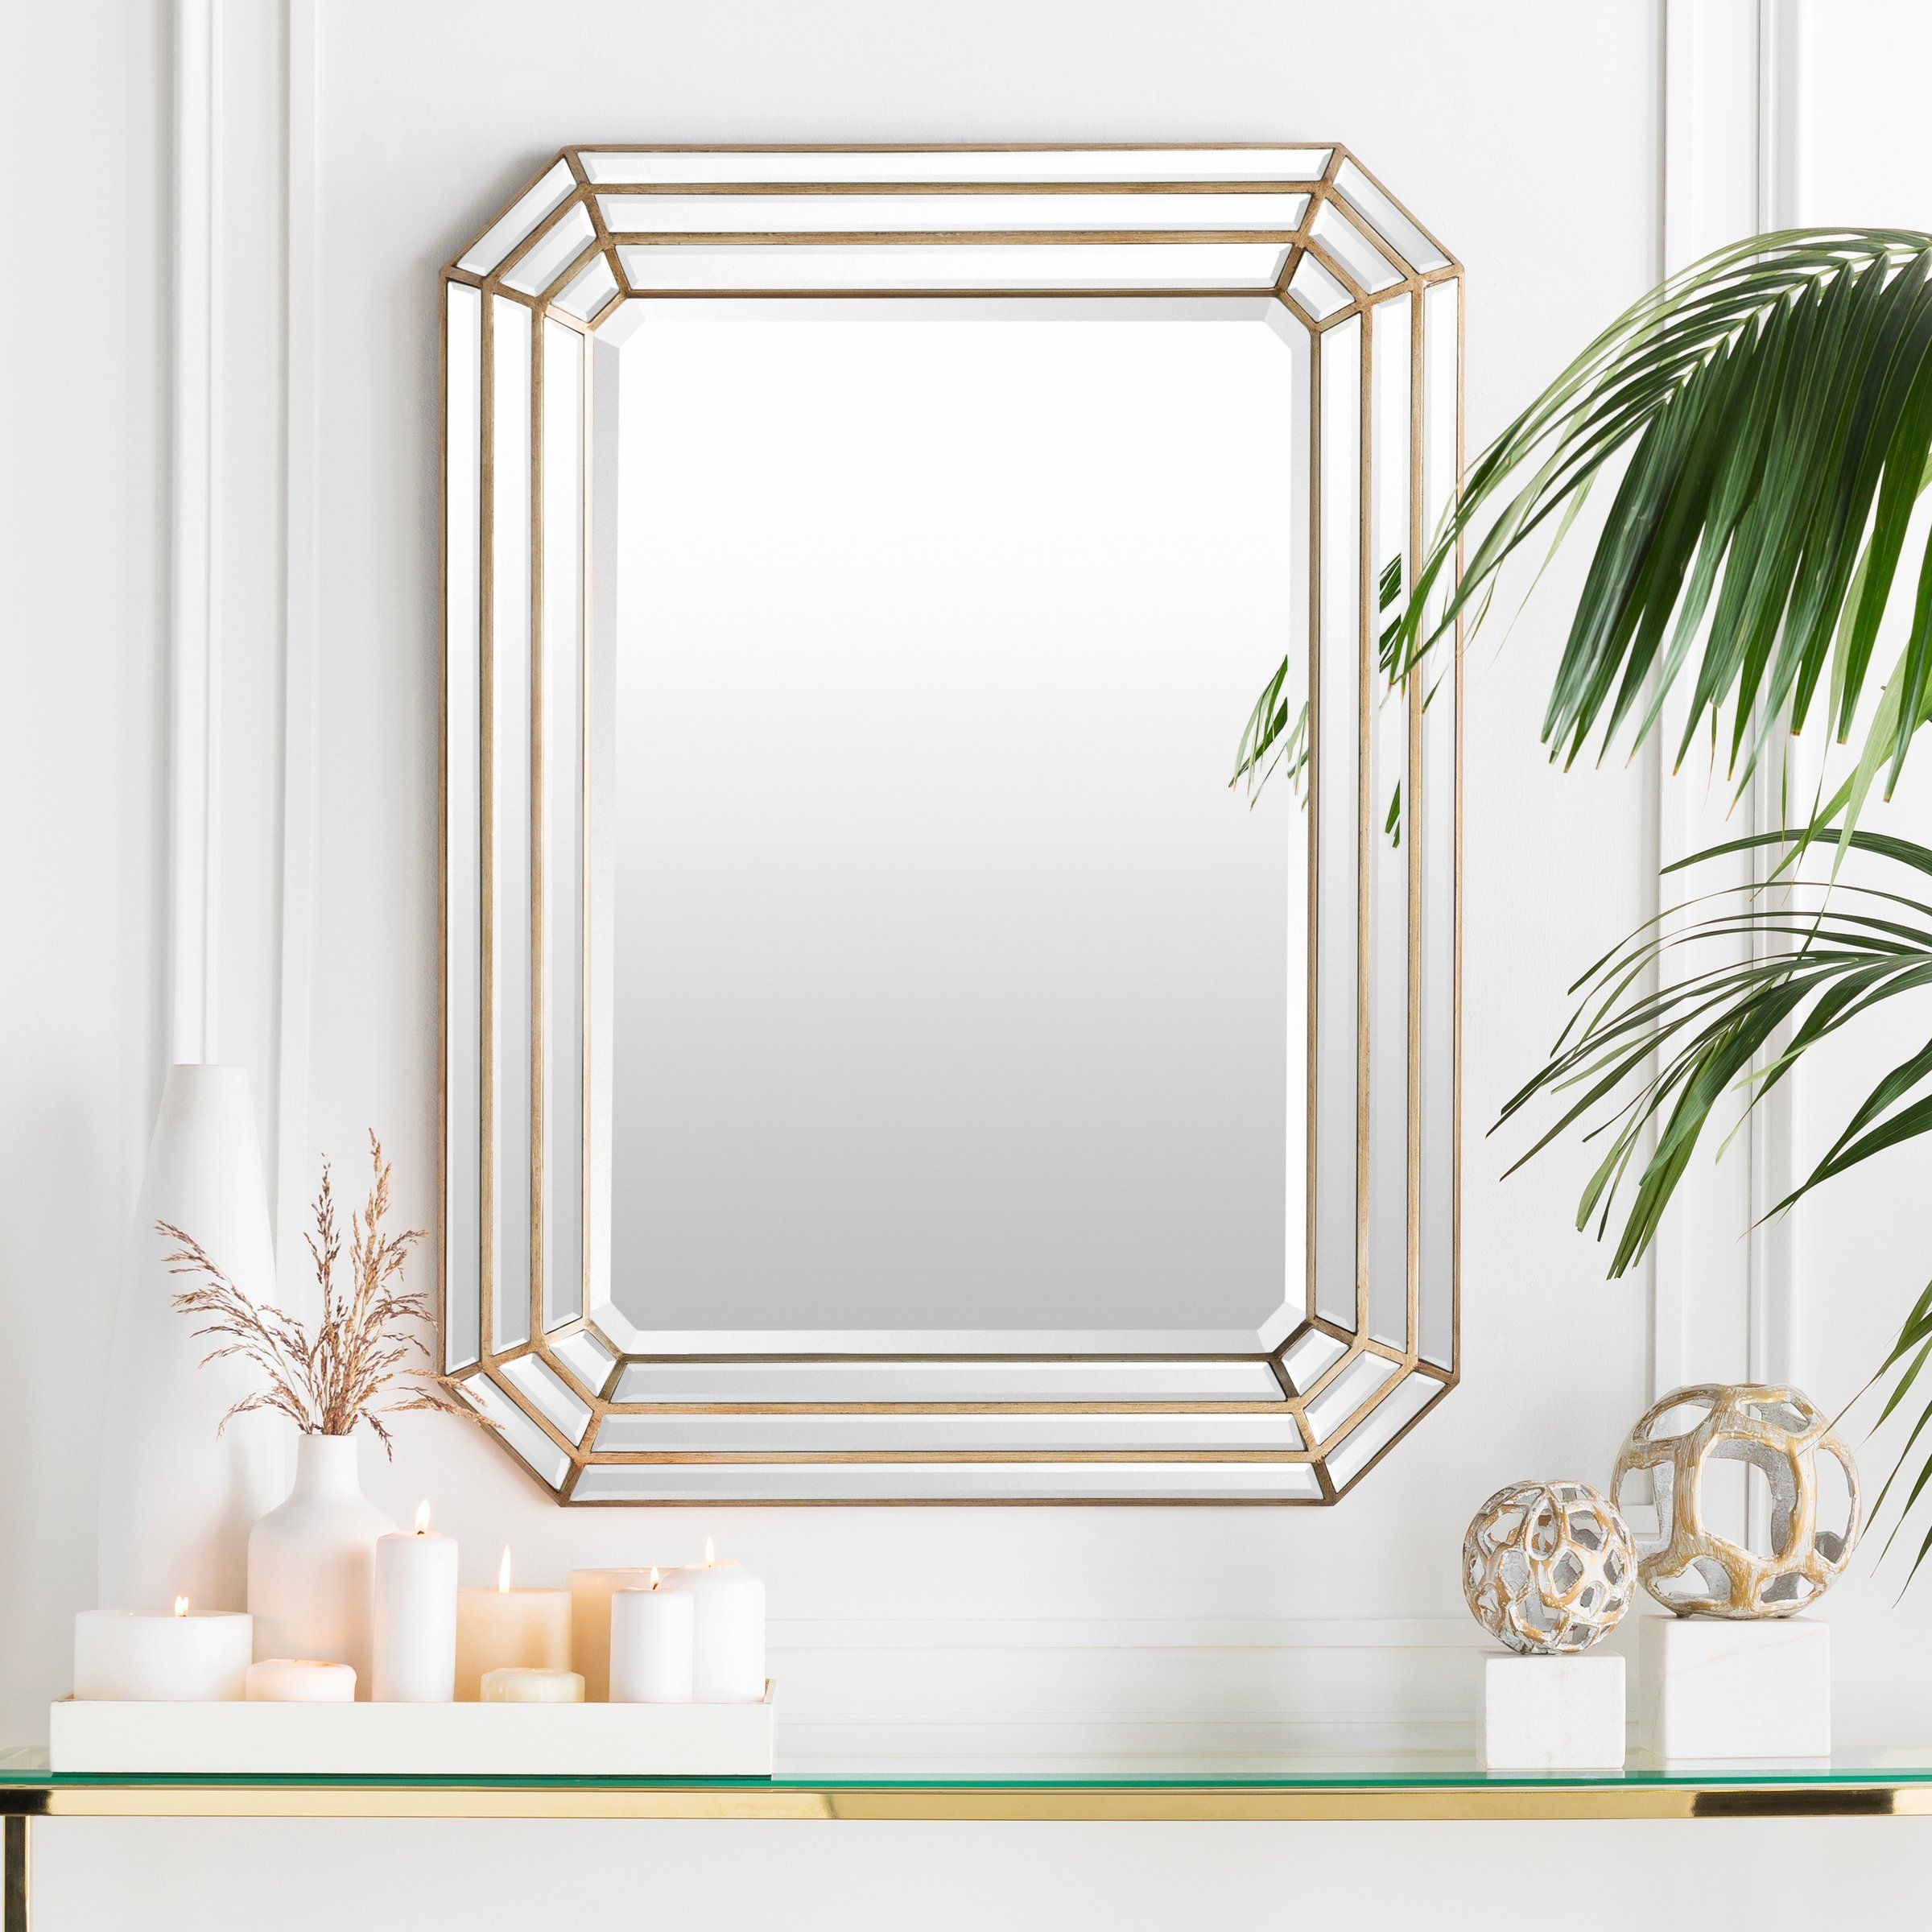 Kimora Decorative Object | M I R R O R   M I R R O R Pertaining To Willacoochee Traditional Beveled Accent Mirrors (View 20 of 20)